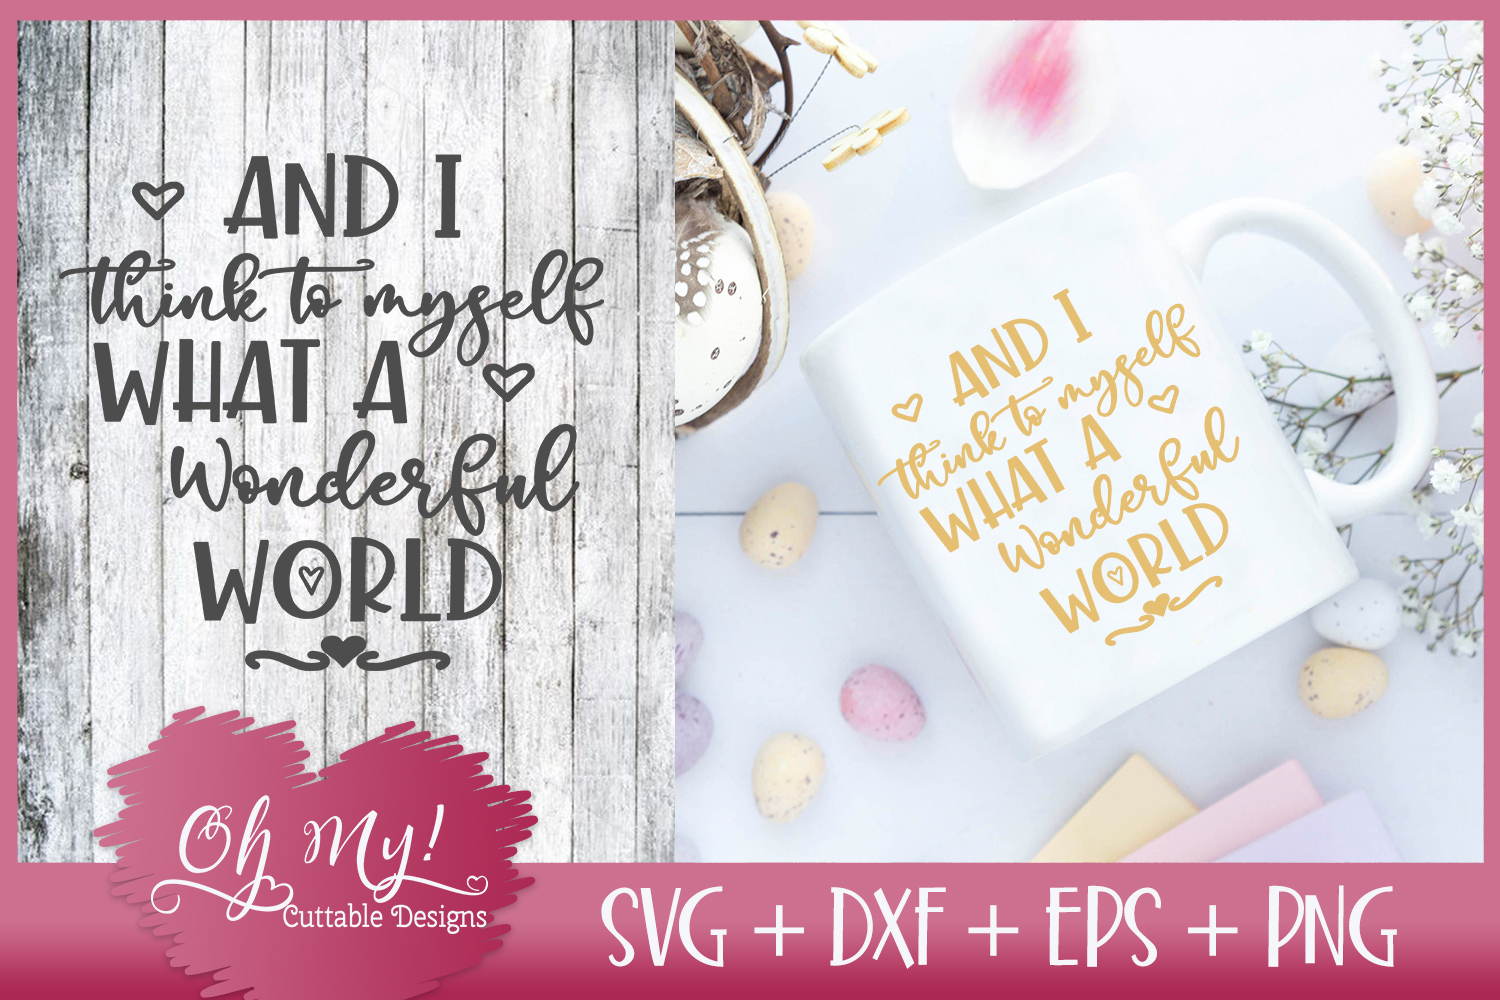 I Think to Myself What A Wonderful World - SVG DXF EPS PNG C example image 1